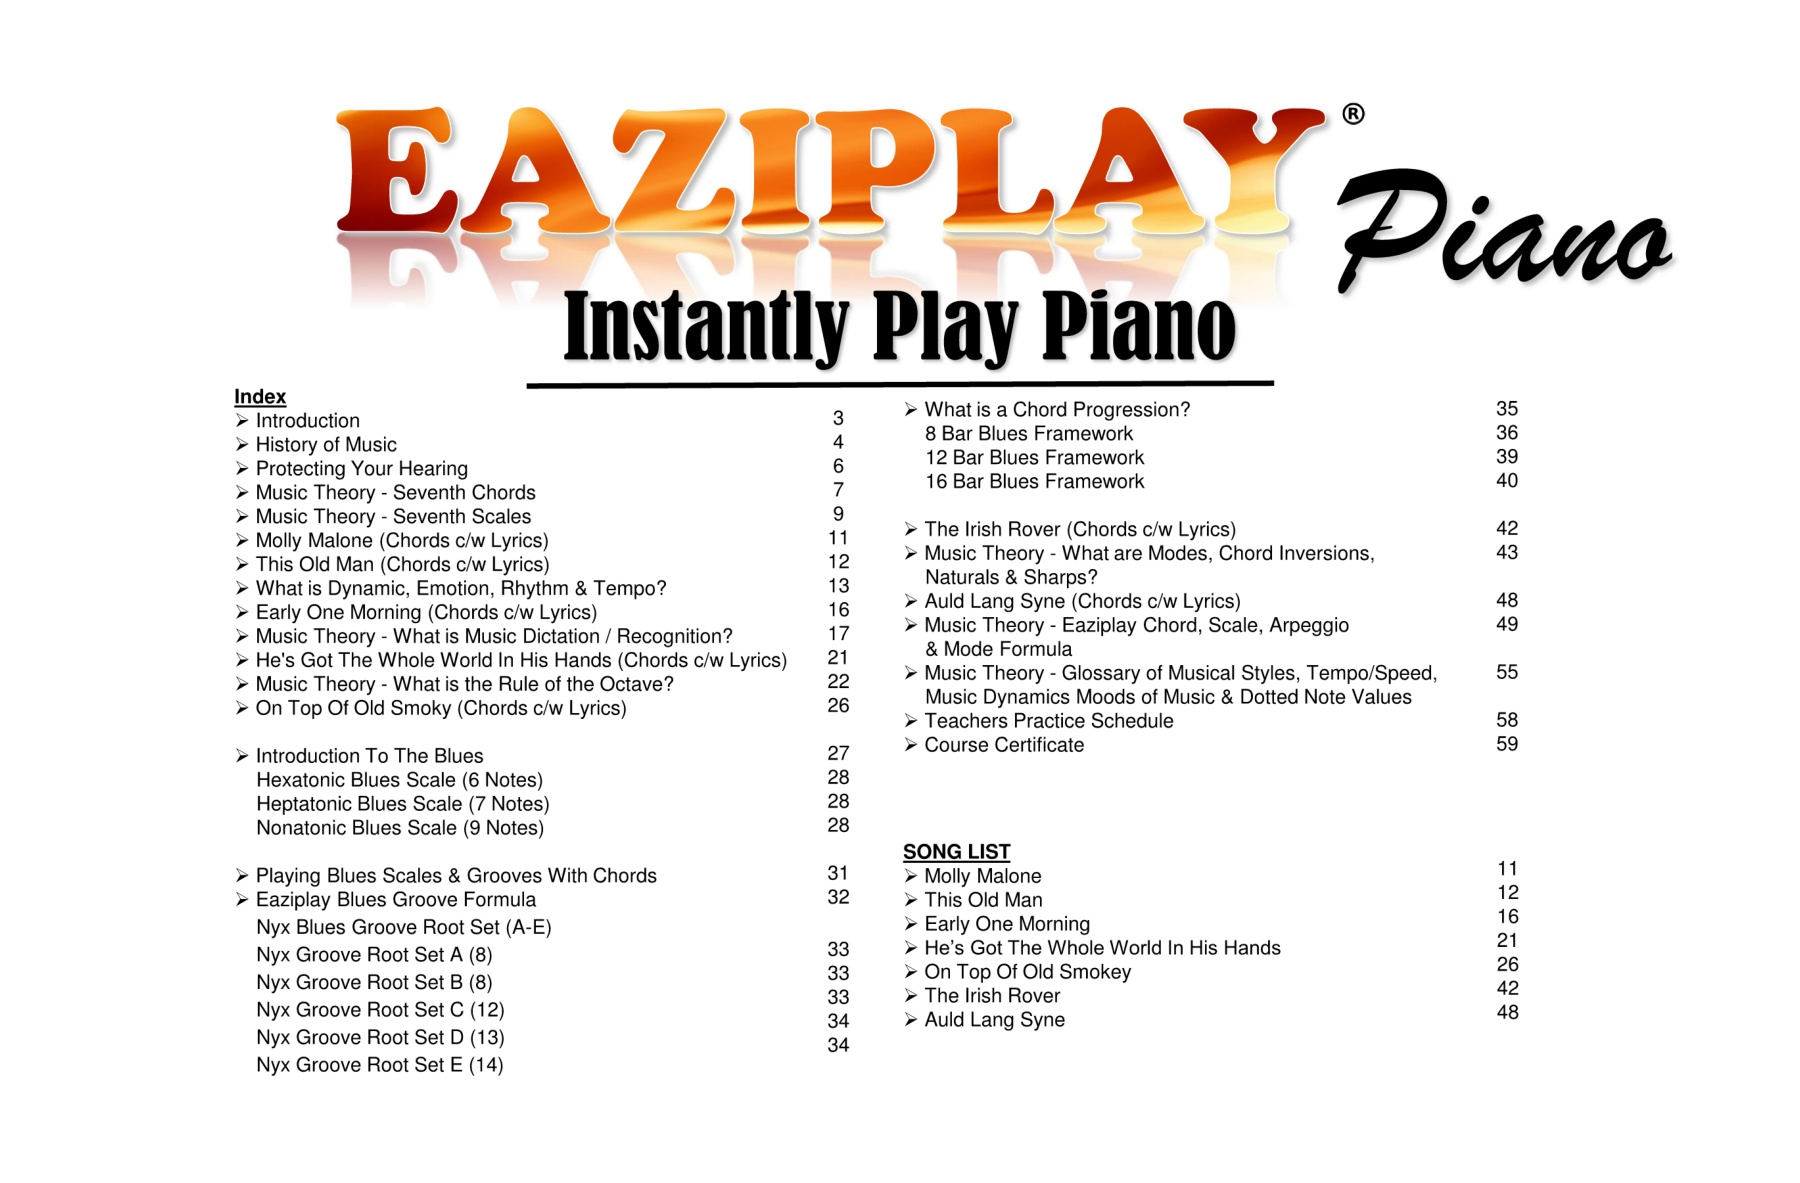 EAZIPLAY PIANO PART 4 - 2019 Pages 1 - 50 - Text Version